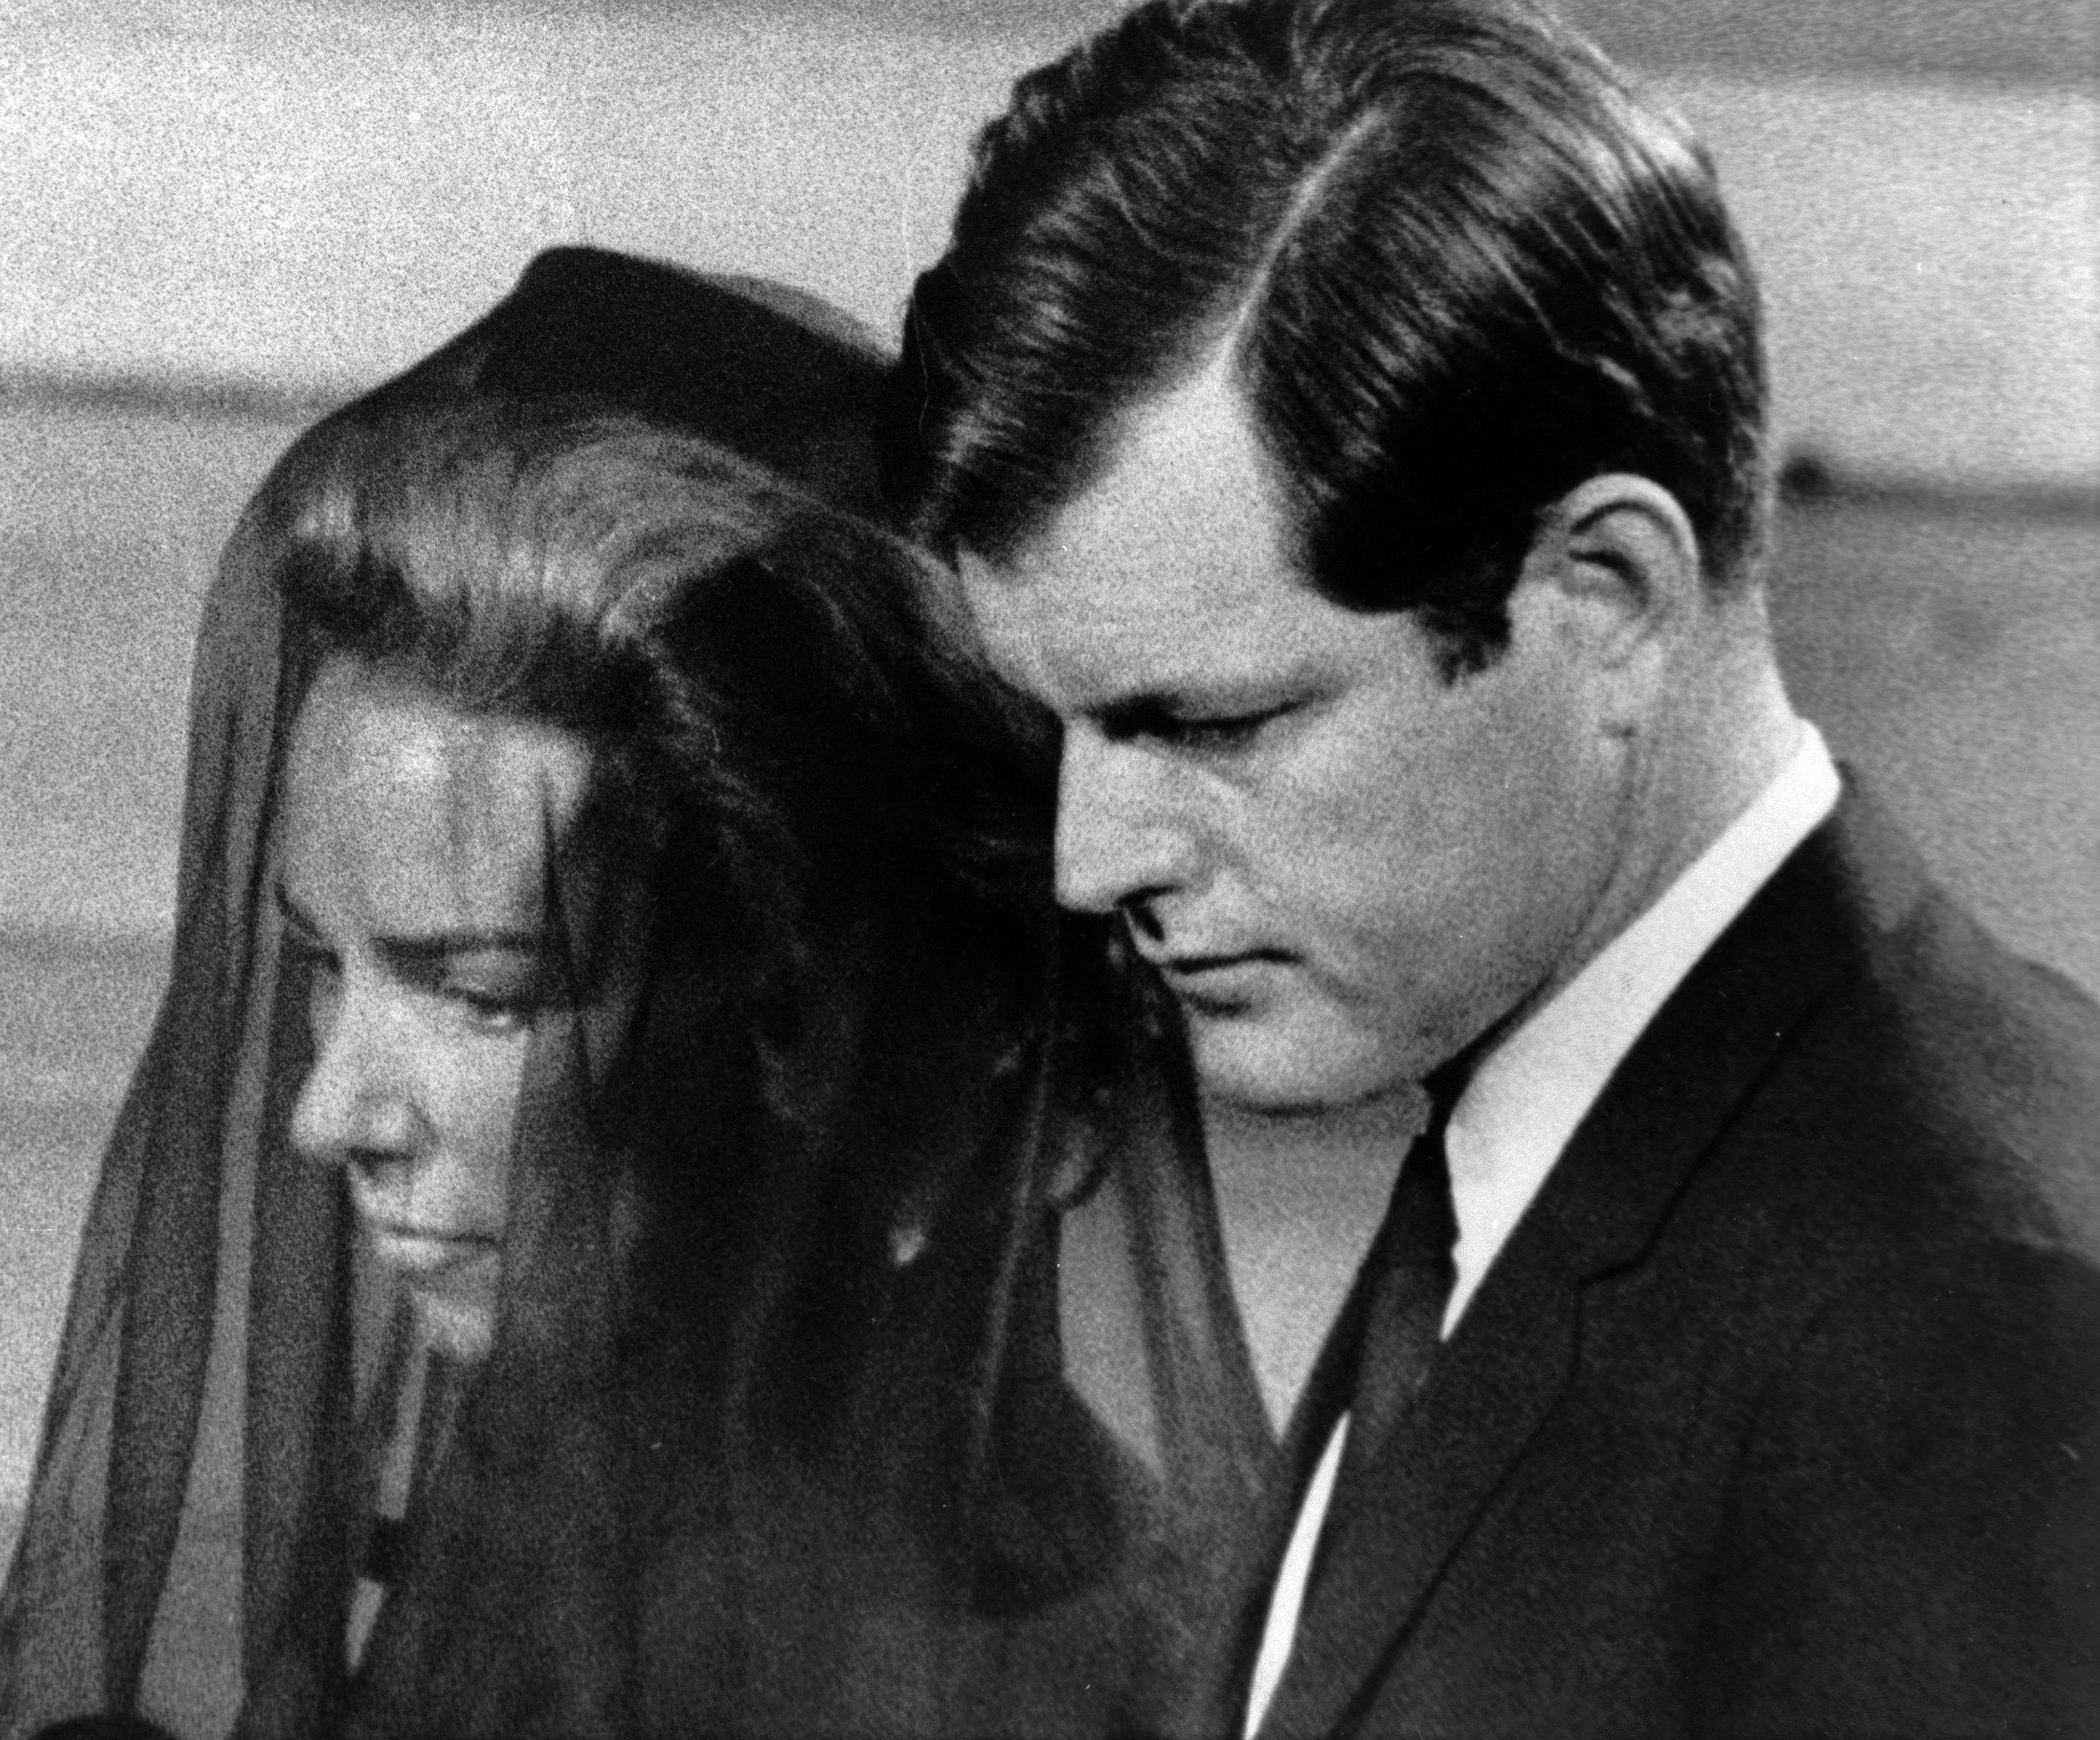 Ethel Kennedy is escorted by her brother-in-law, Sen. Edward Kennedy, at the funeral services of her husband, Sen. Robert F. Kennedy, in 1968.